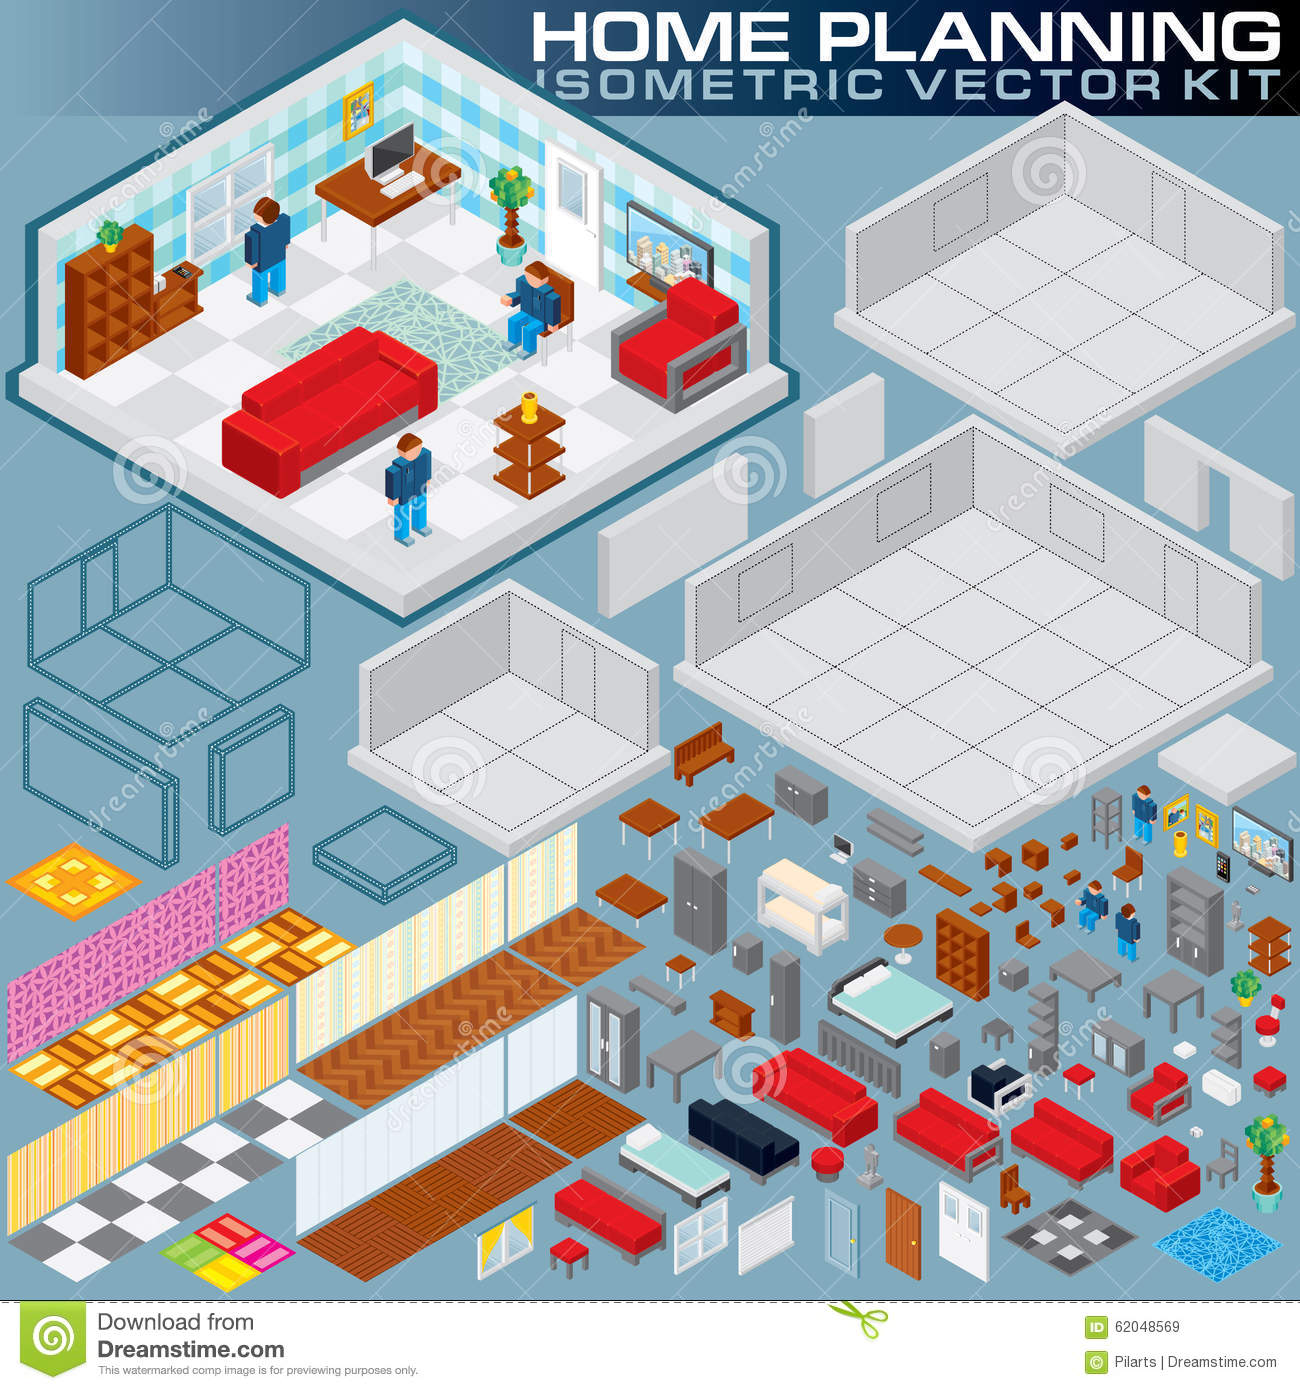 Virtual 3d Home Design Game: Isometric Home Plan. 3D Vector Creation Kit Stock Vector